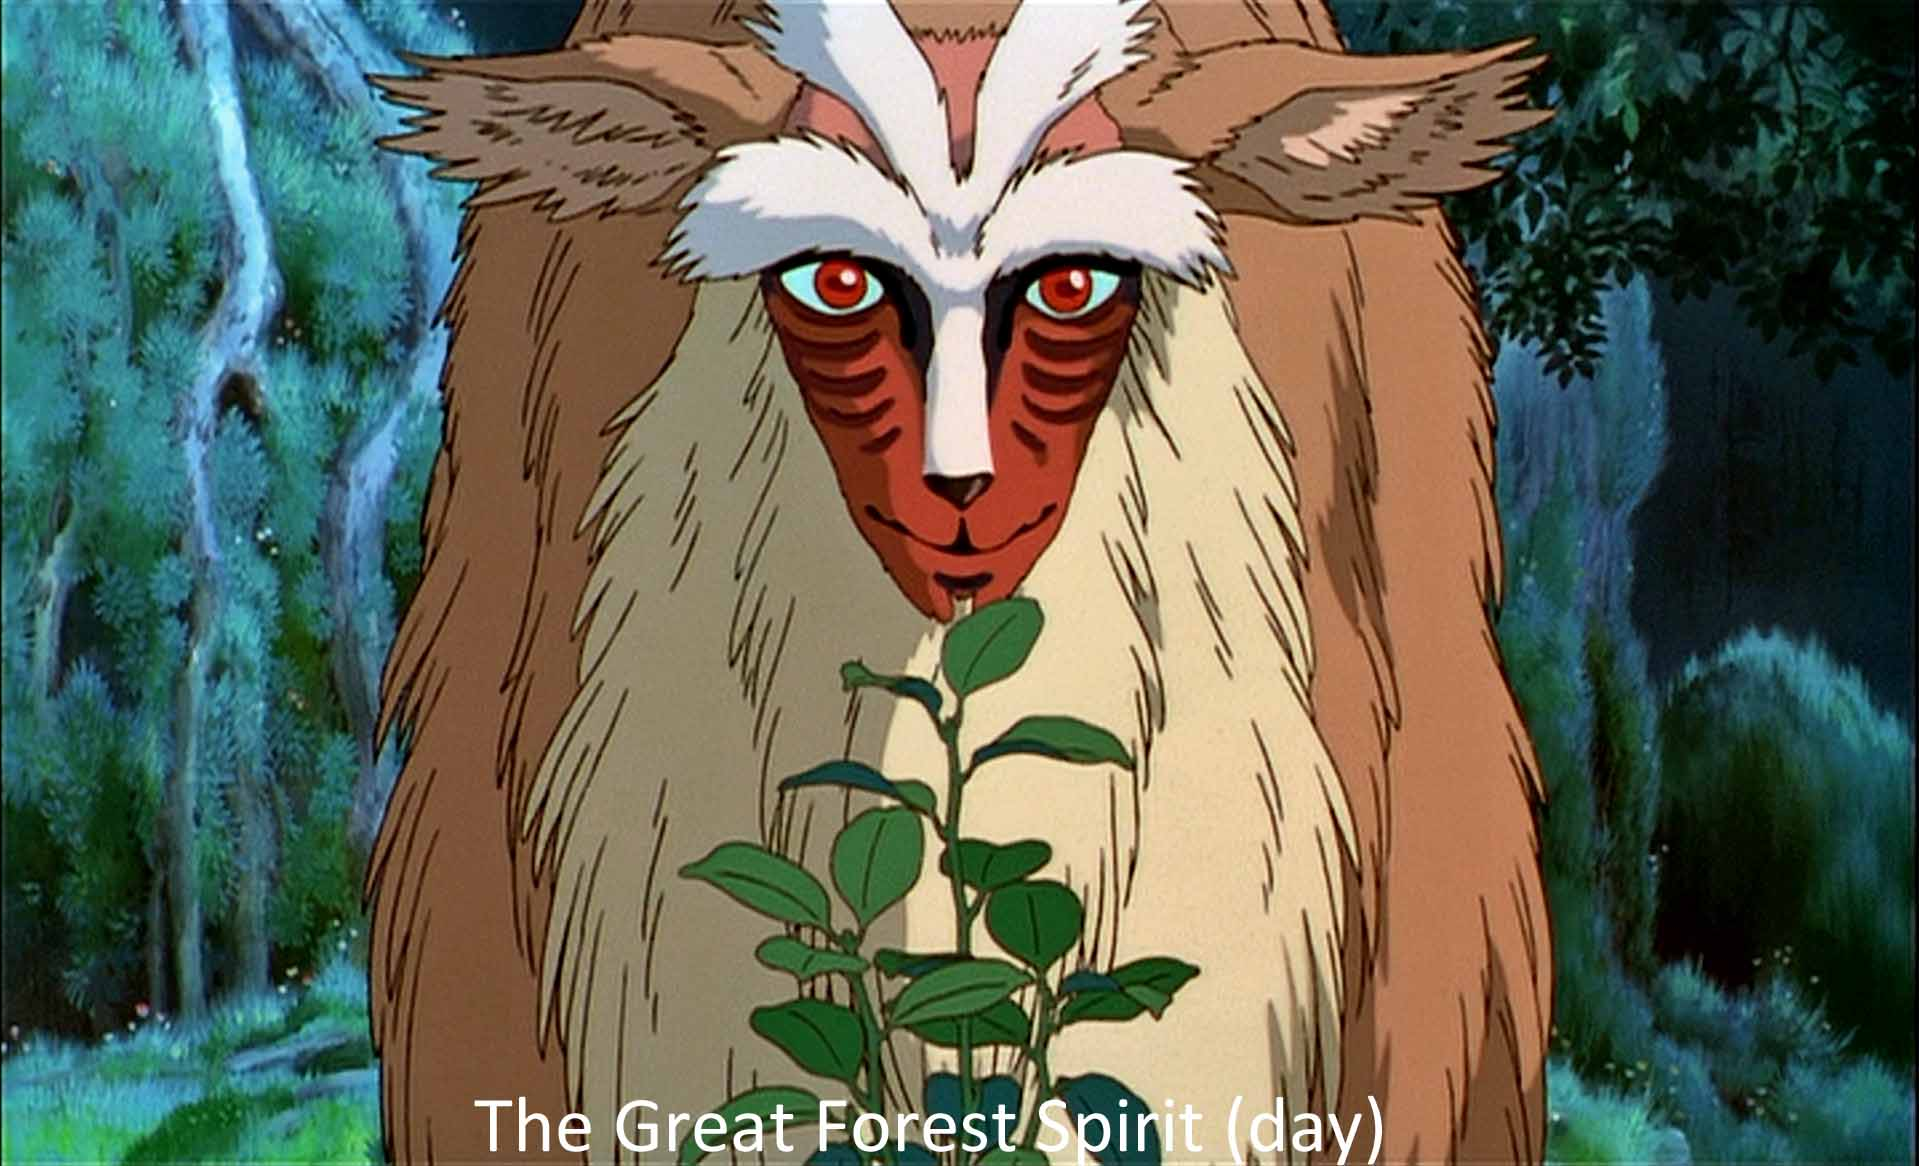 The Great Forest Spirit (day)